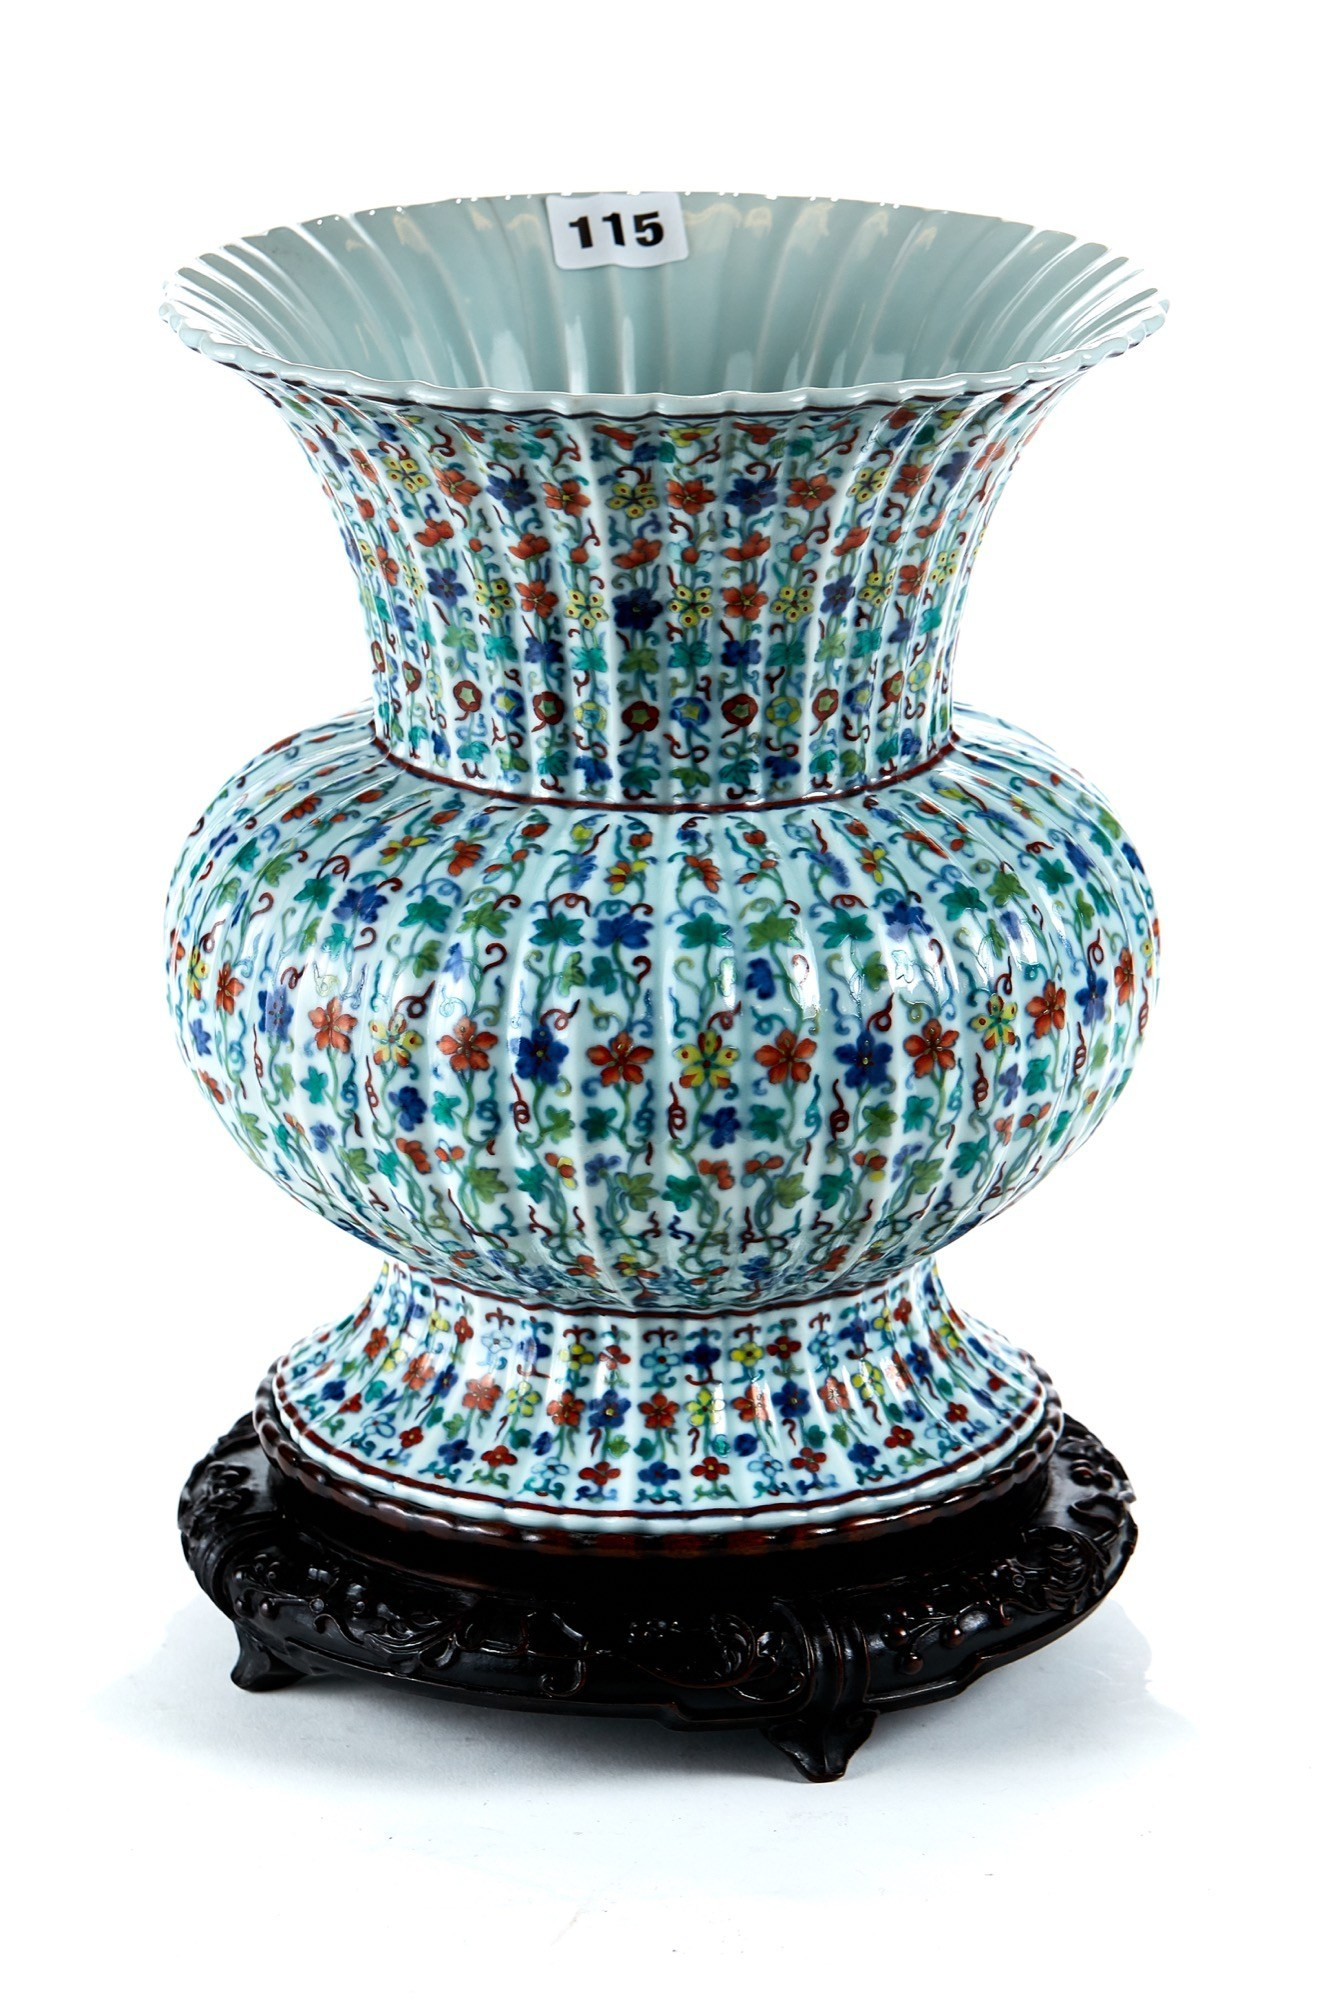 House Clearance Vase Sells For £6k - Let The Pictures Speak